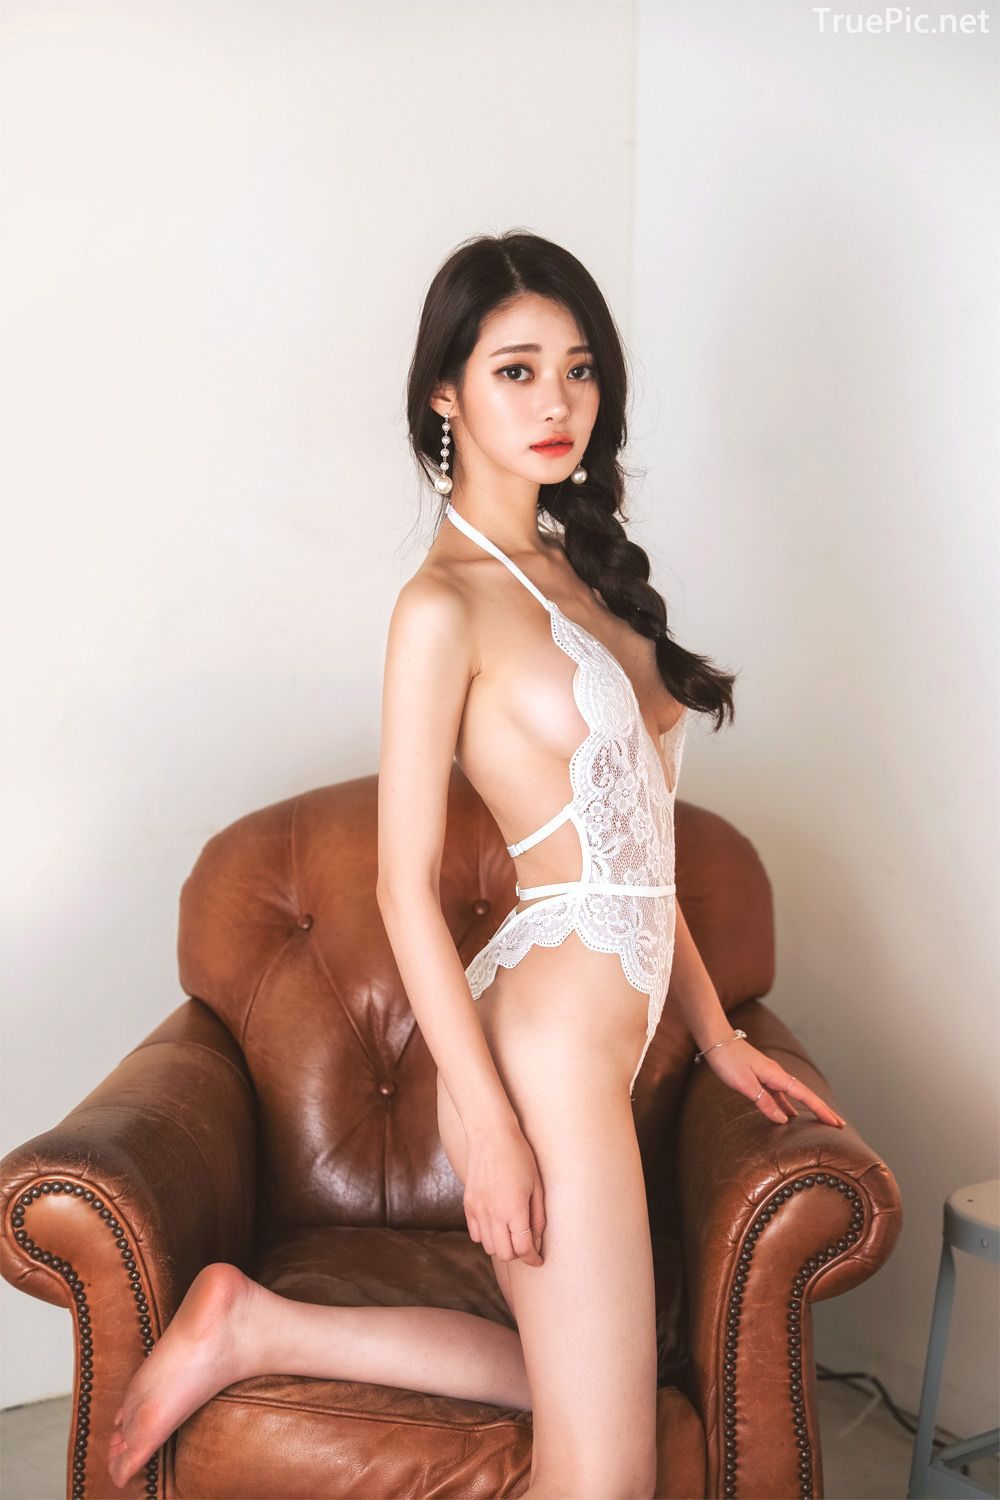 Korean Lingerie Model - Hee - Black and White Sexy Lingerie Collection - TruePic.net - Picture 1